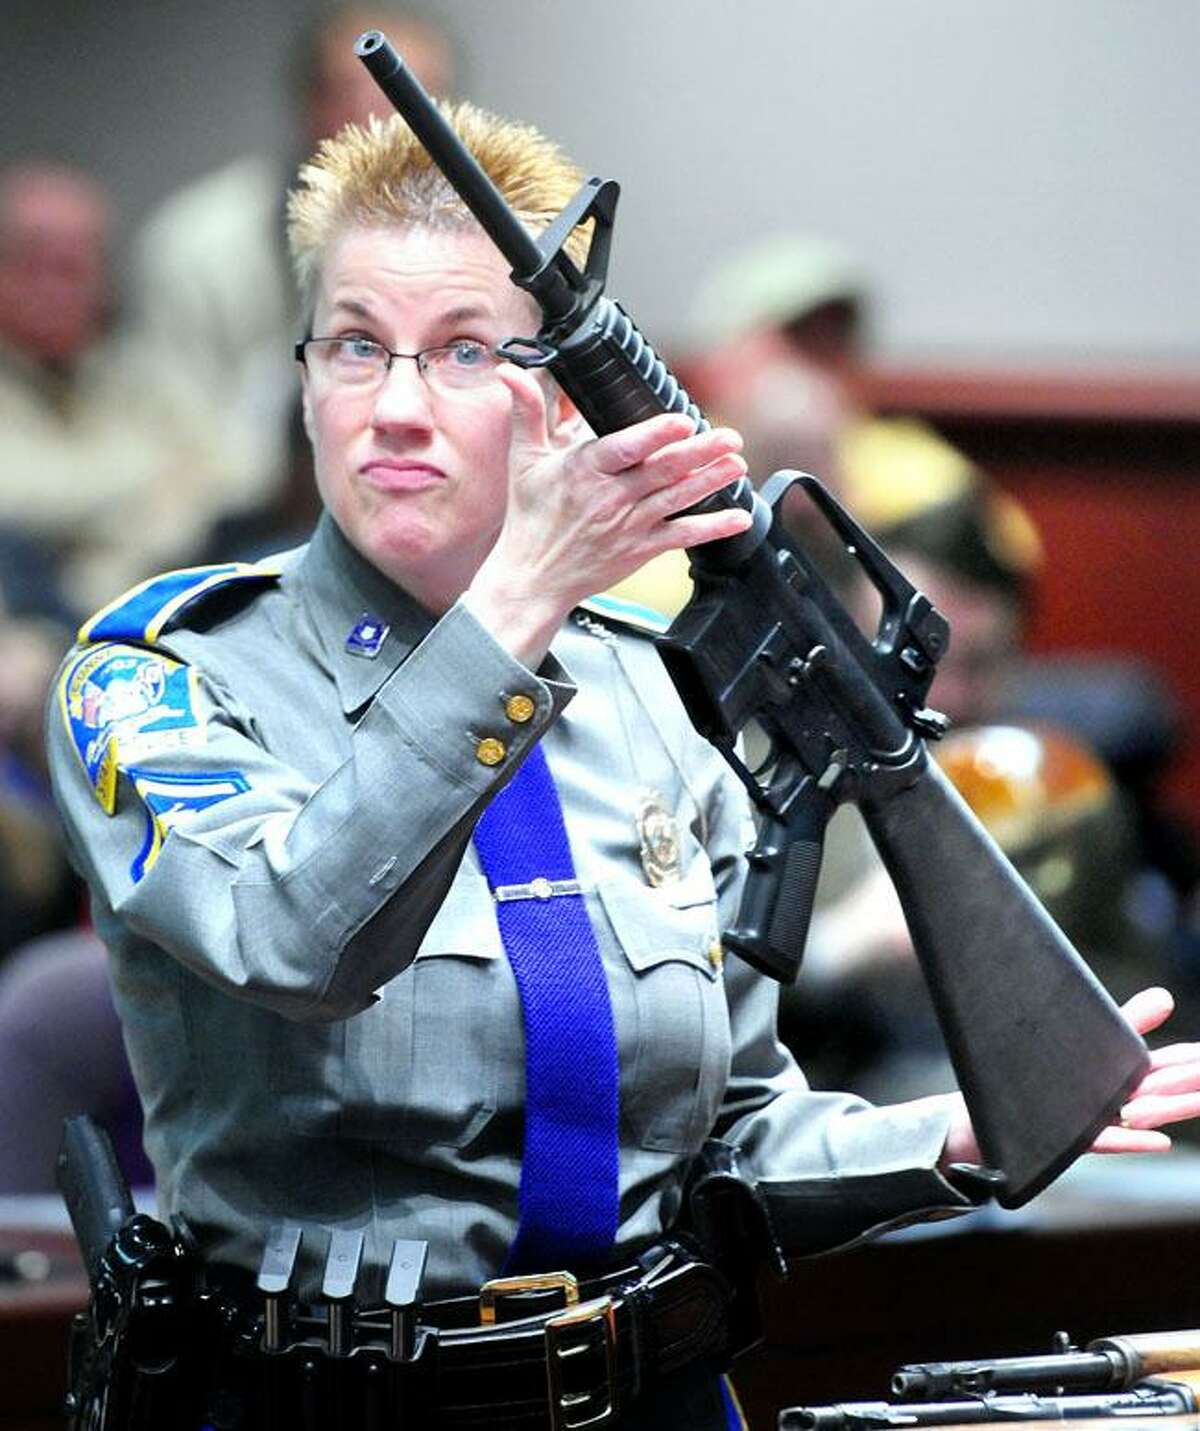 Connecticut State Police Detective Barbara Mattson holds up a Bushmaster rifle during a legislative hearing about gun control at the Legislative Office Building in Hartford on 1/28/2013.Photo by Arnold Gold/New Haven Register